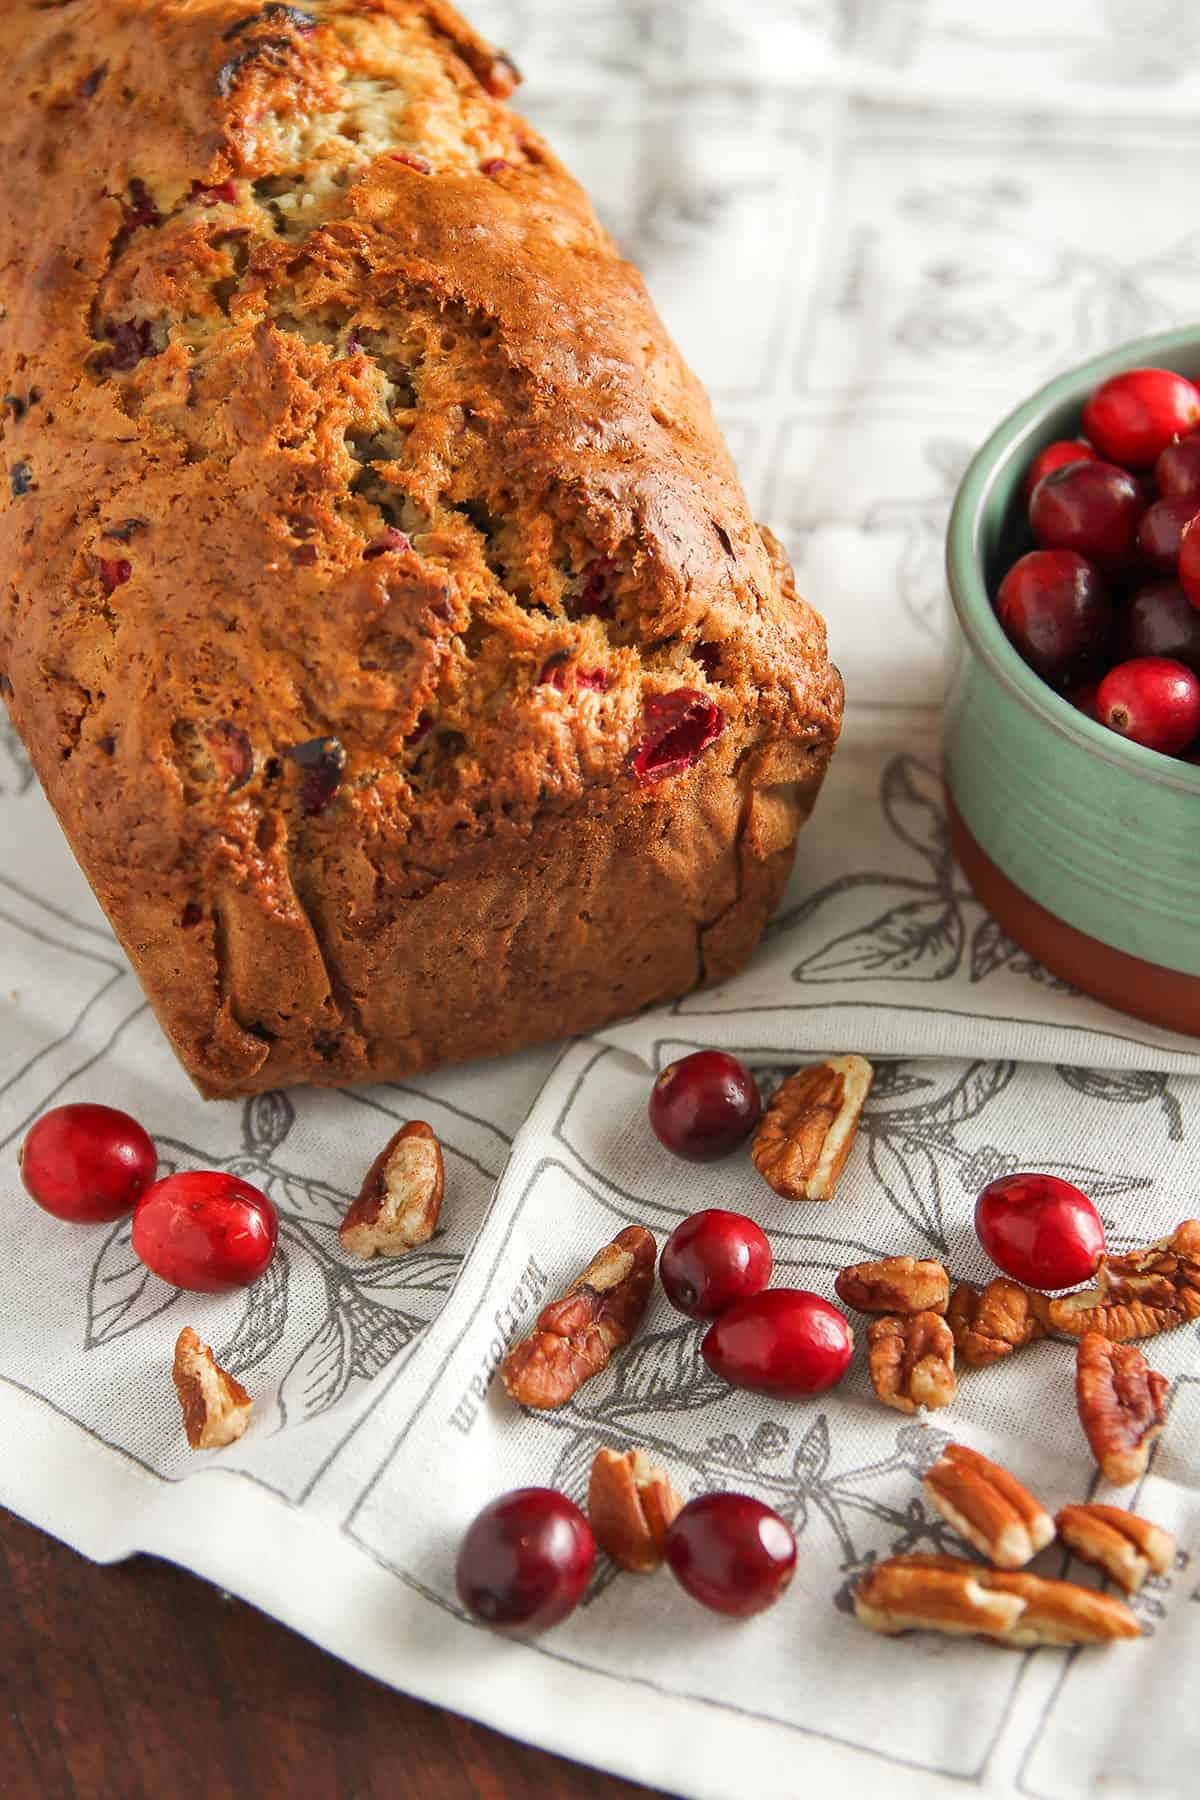 Cranberry Nut Bread is a delicious quick bread for the holiday season. Chock full of fresh cranberries and pecans, this is an easy quick bread you'll want to make again and again.